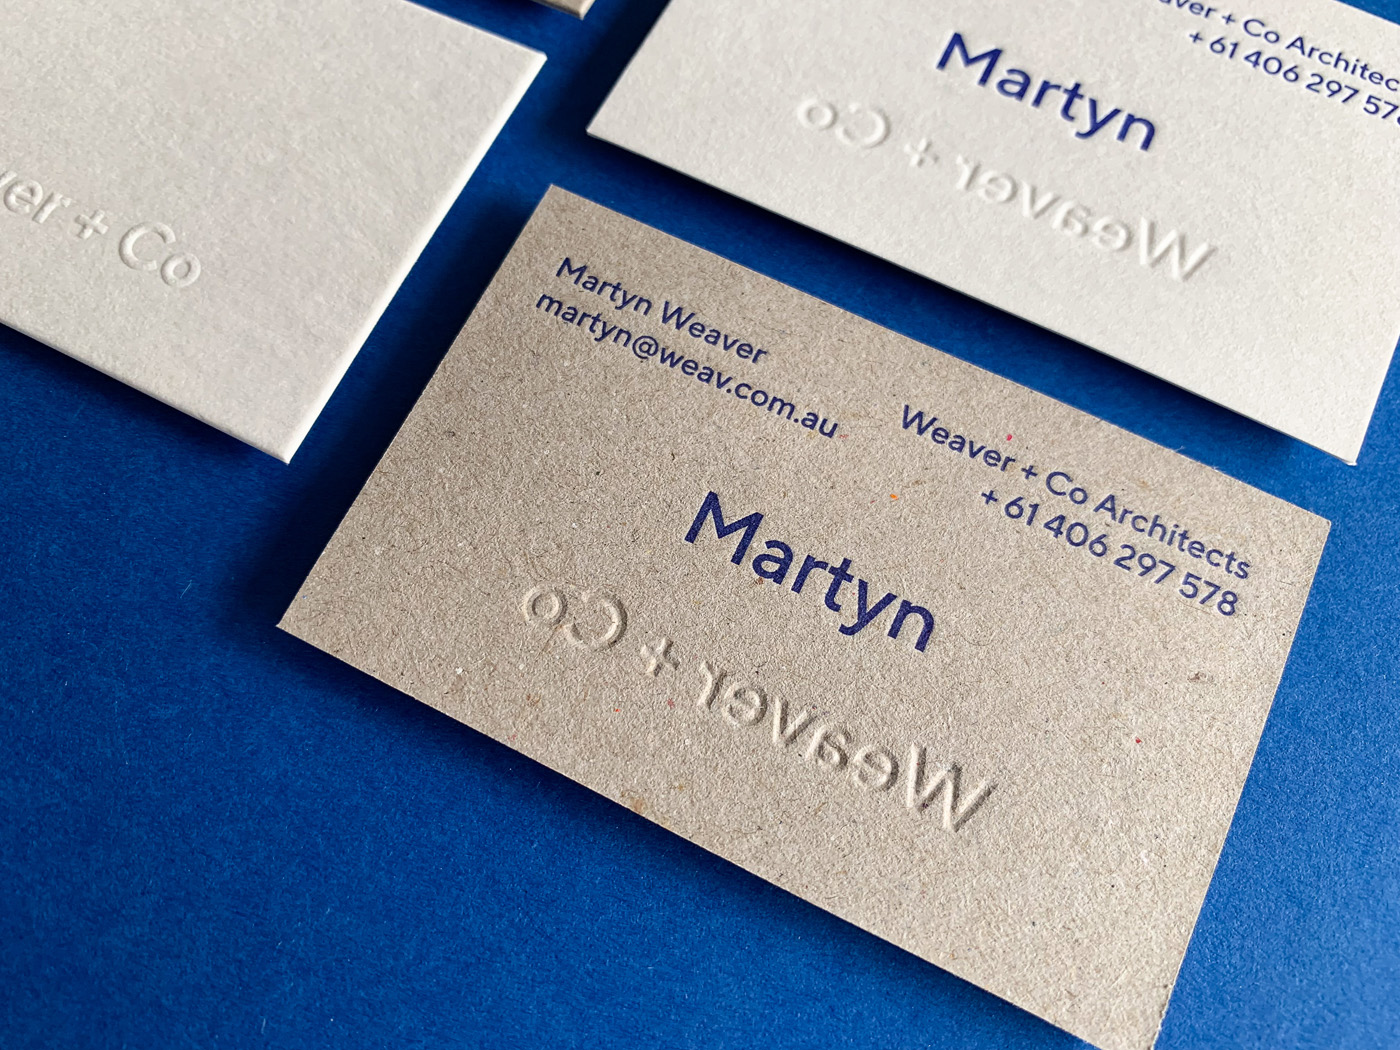 Letter pressed business cards for Martyn Weaver Co on Boxboard and Wild 1